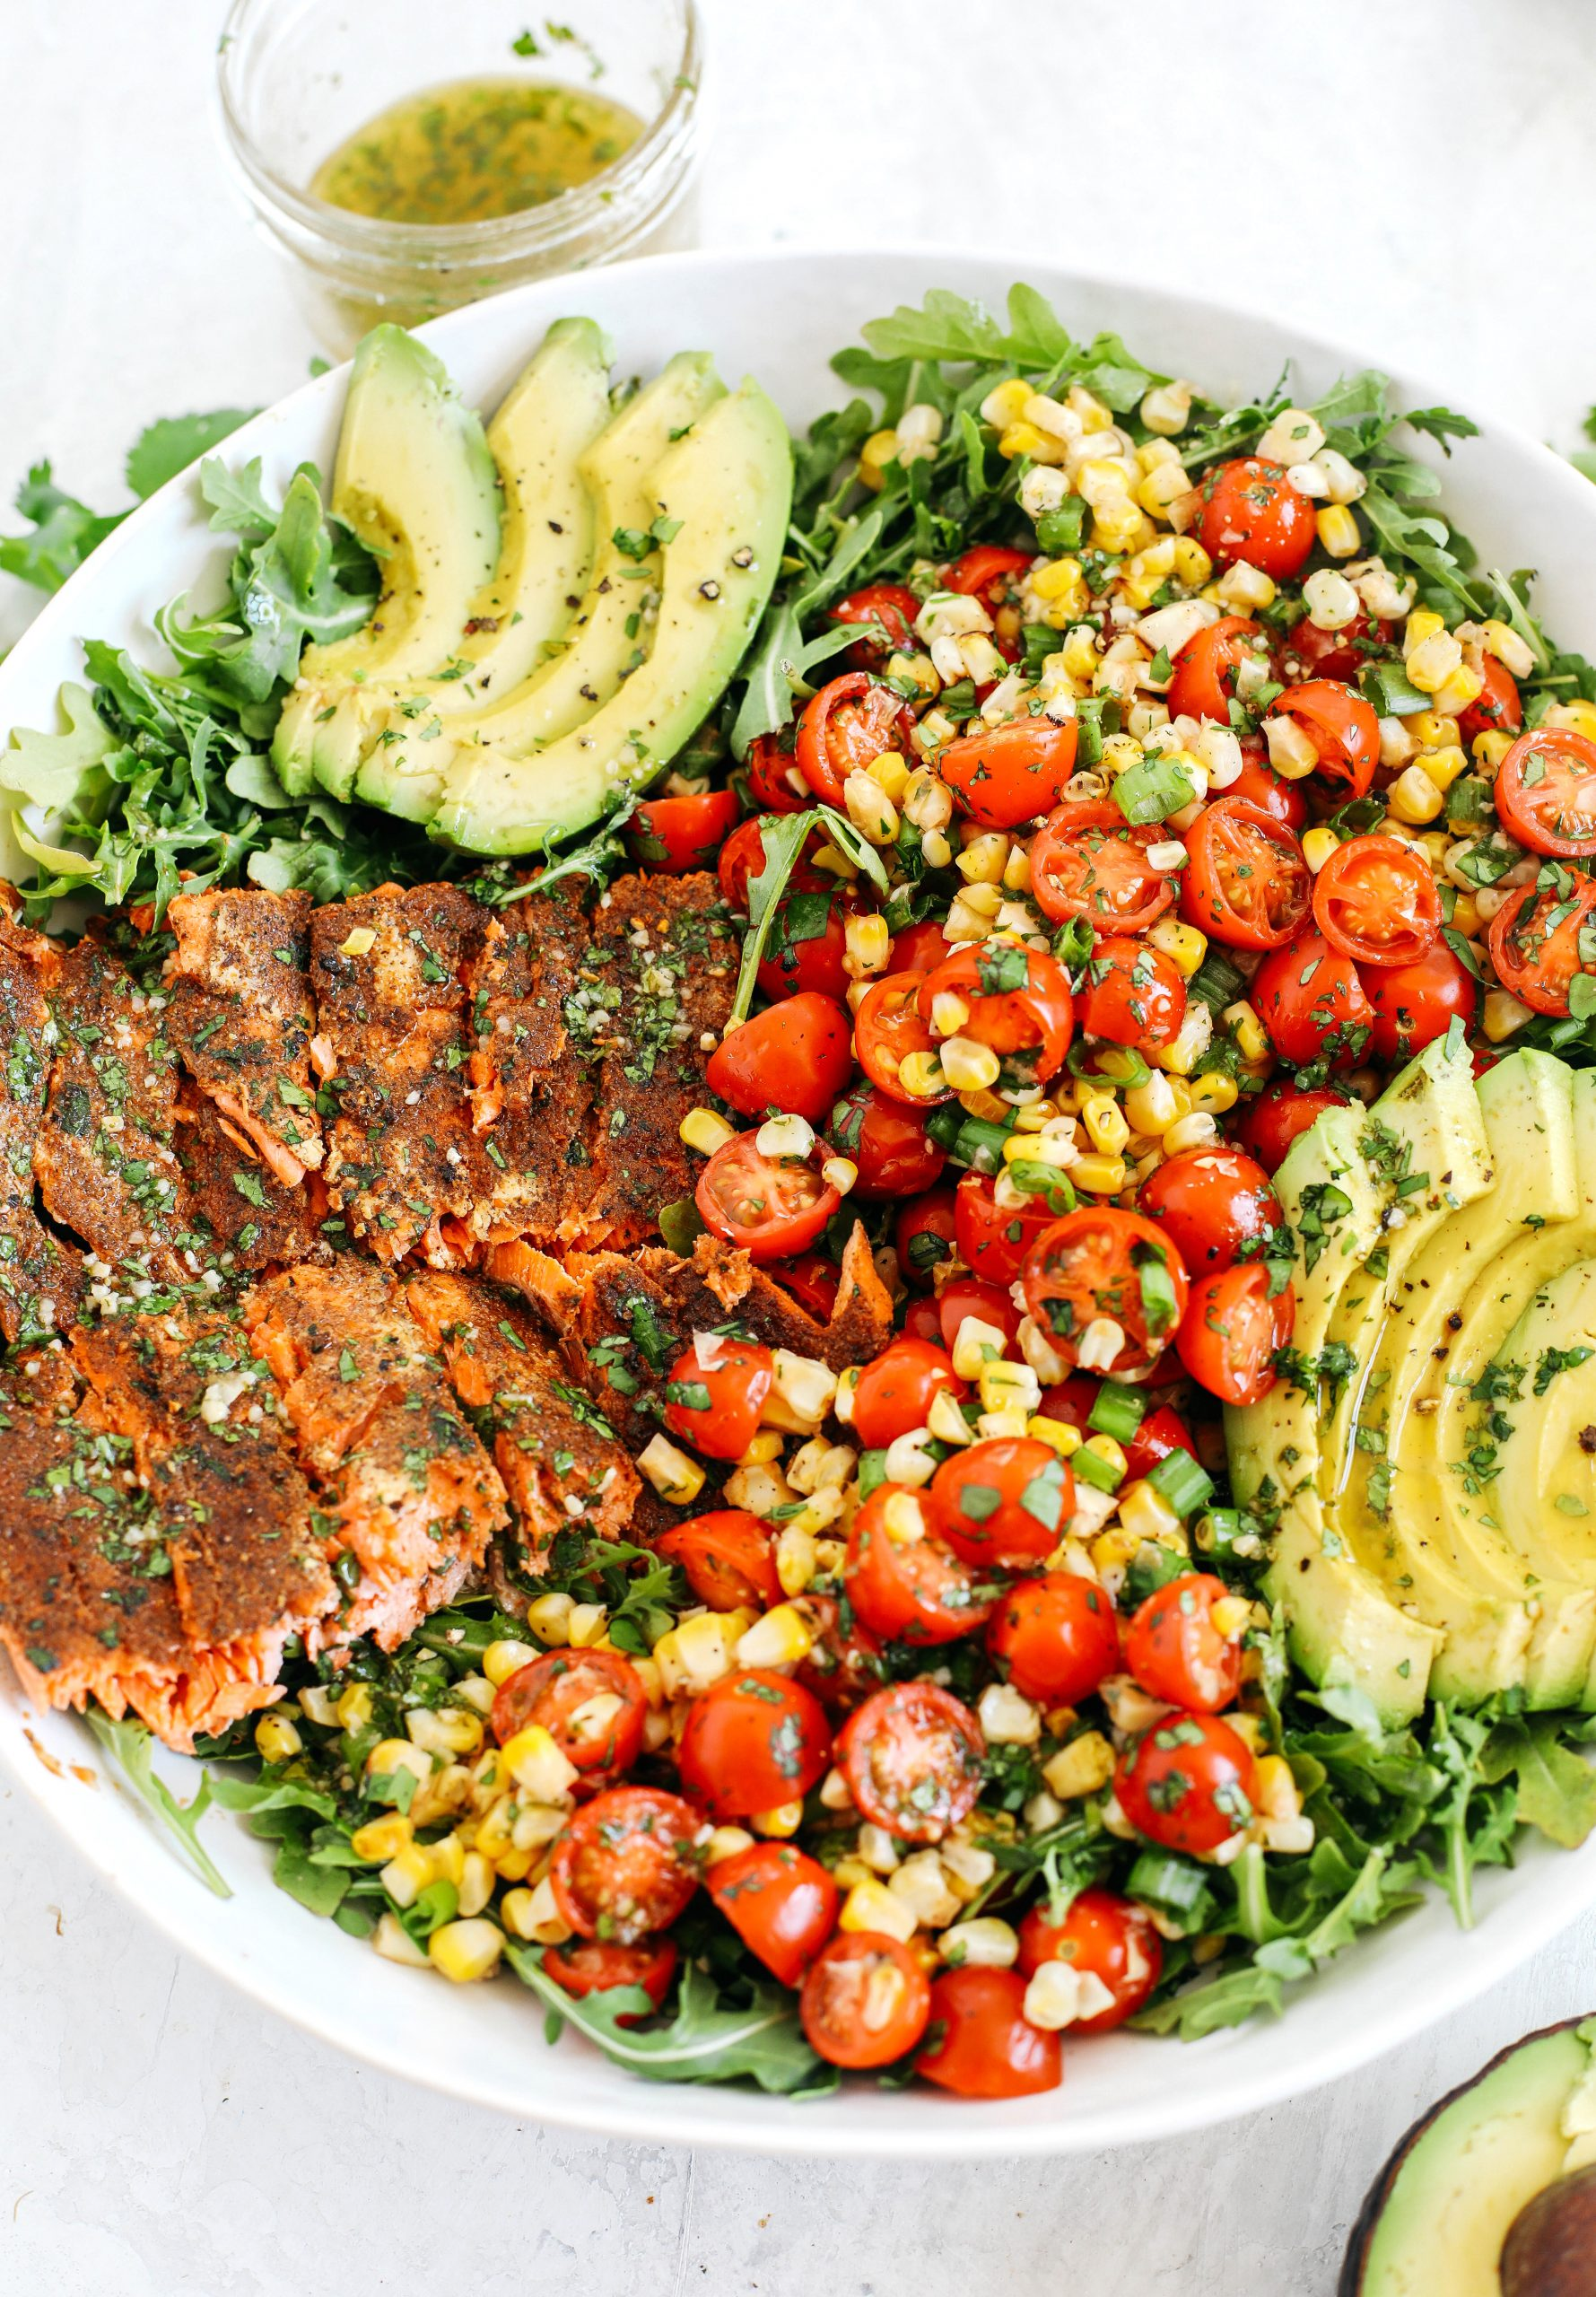 Chili-rubbed salmon with grilled corn, fresh tomatoes and sliced avocado all tossed together with a cilantro-lime dressing makes the perfect summer salad!